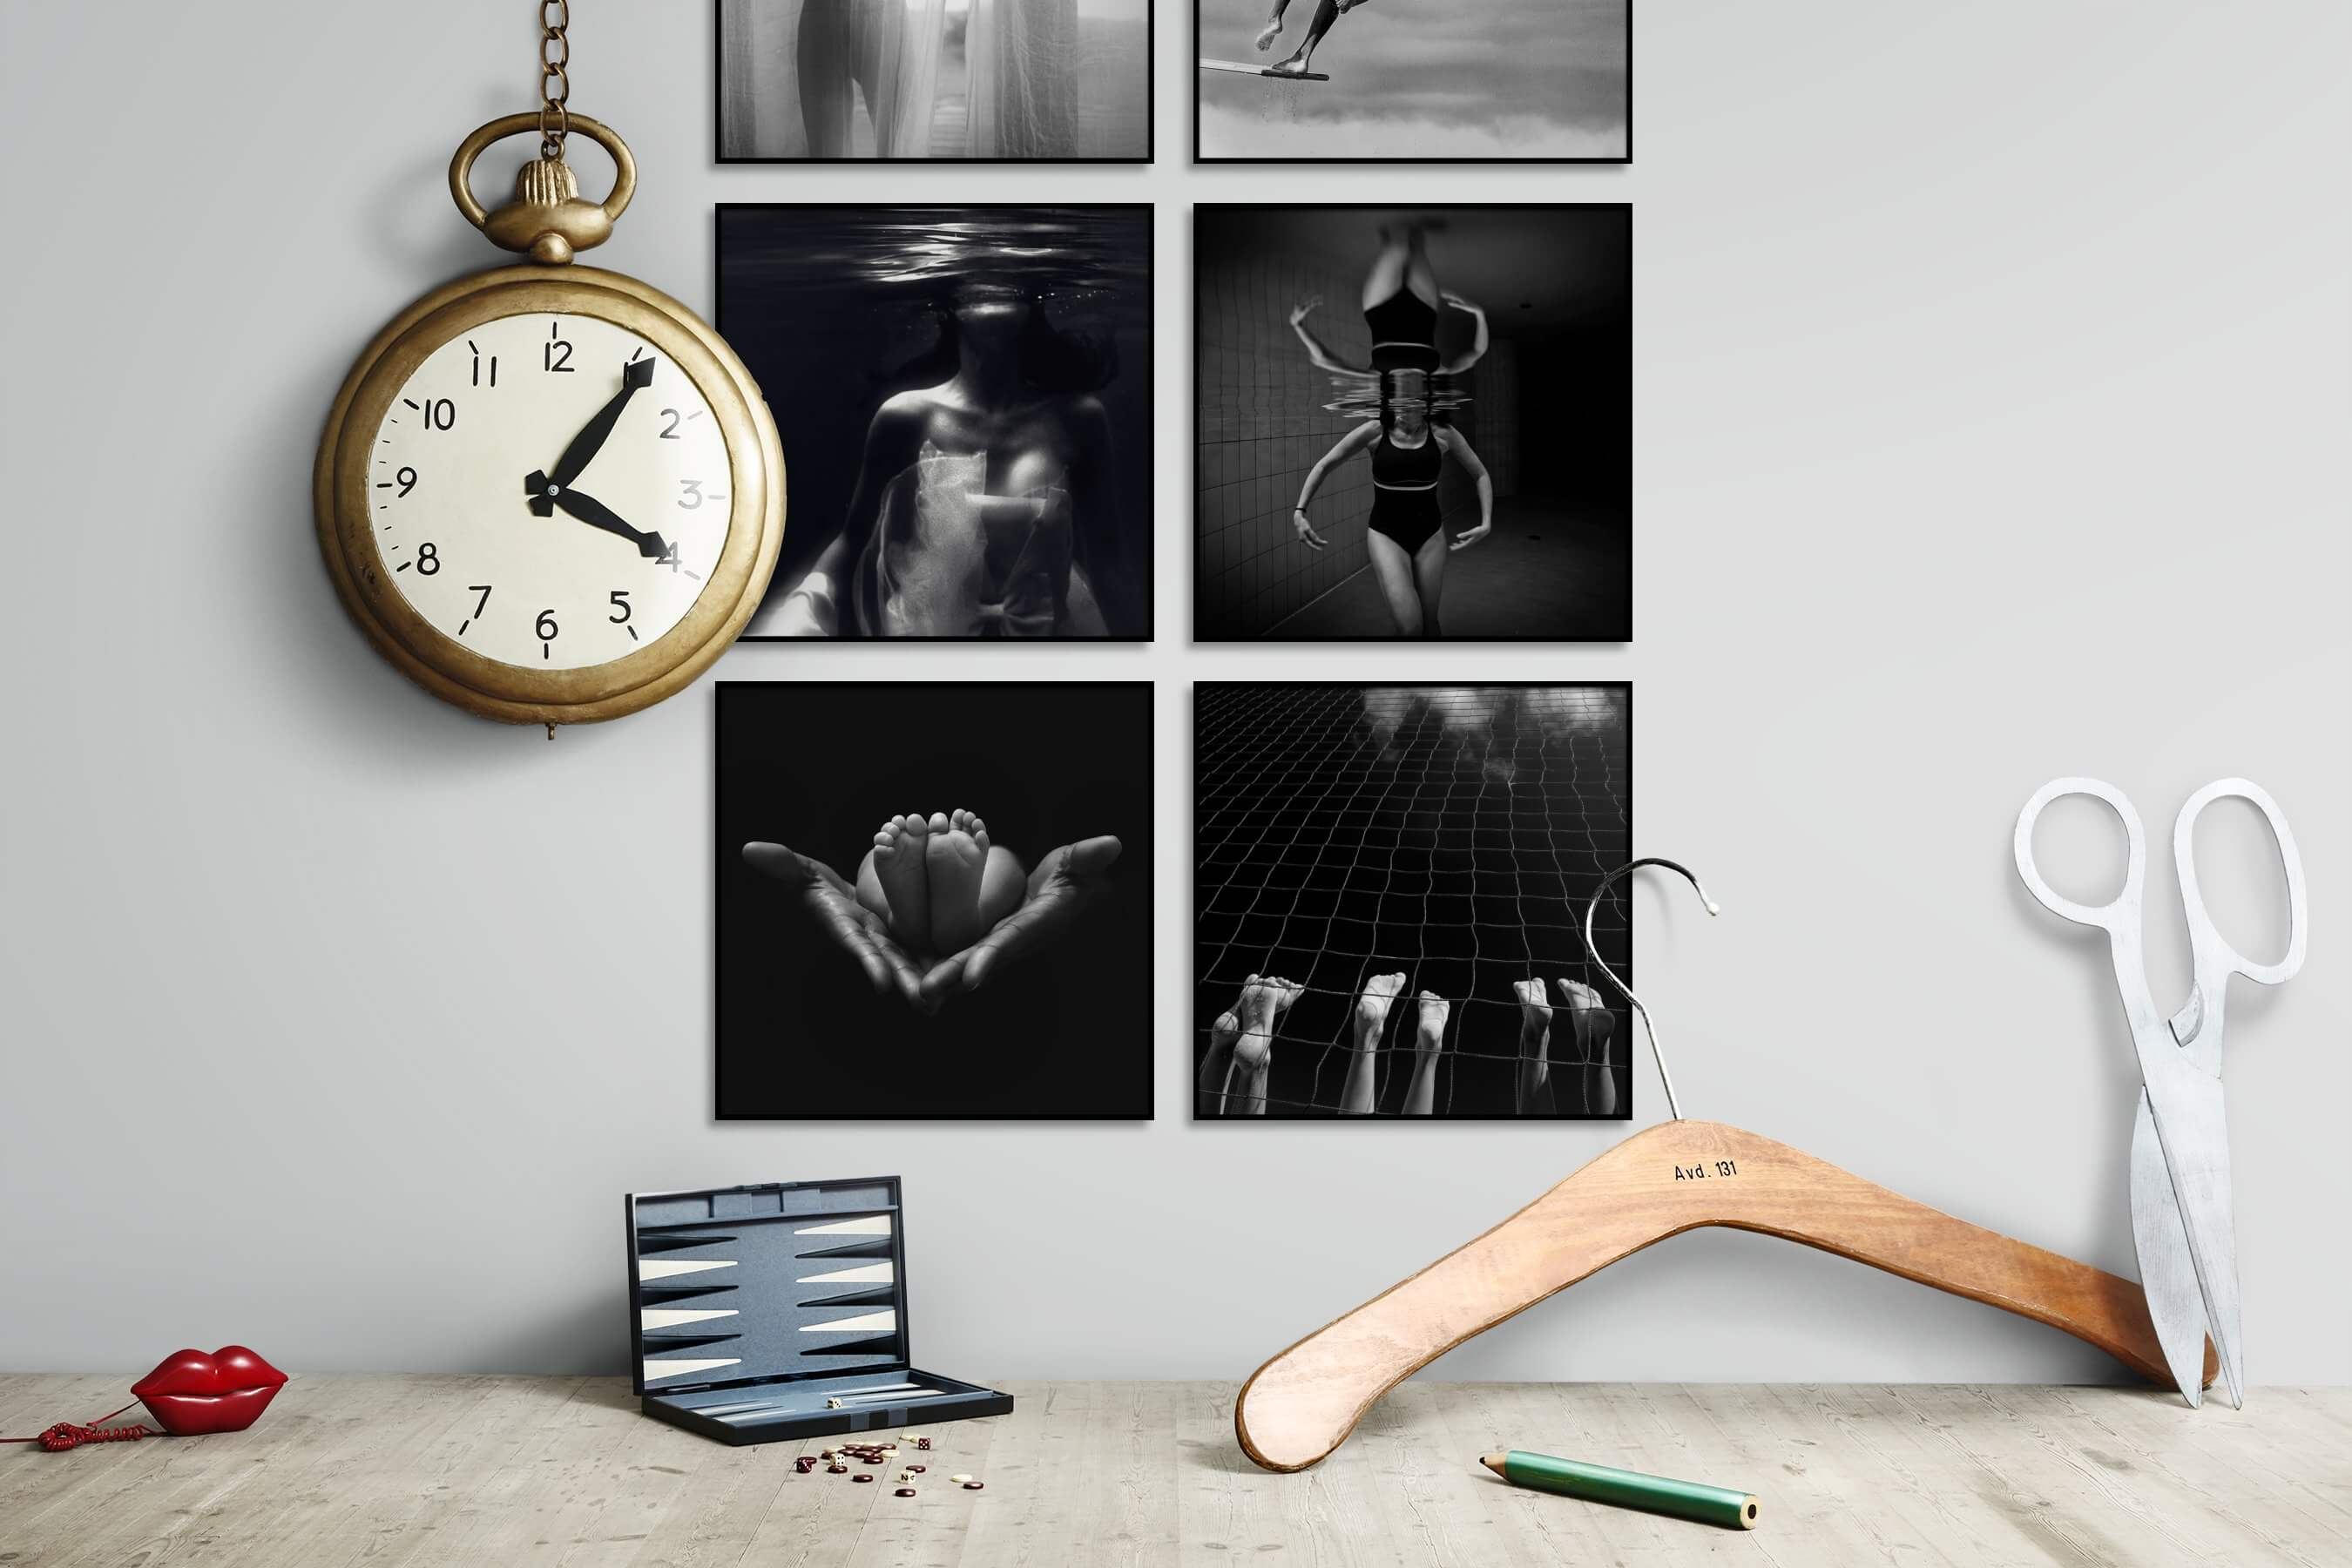 Gallery wall idea with six framed pictures arranged on a wall depicting Fashion & Beauty, Black & White, Dark Tones, Beach & Water, For the Minimalist, Mindfulness, and For the Moderate